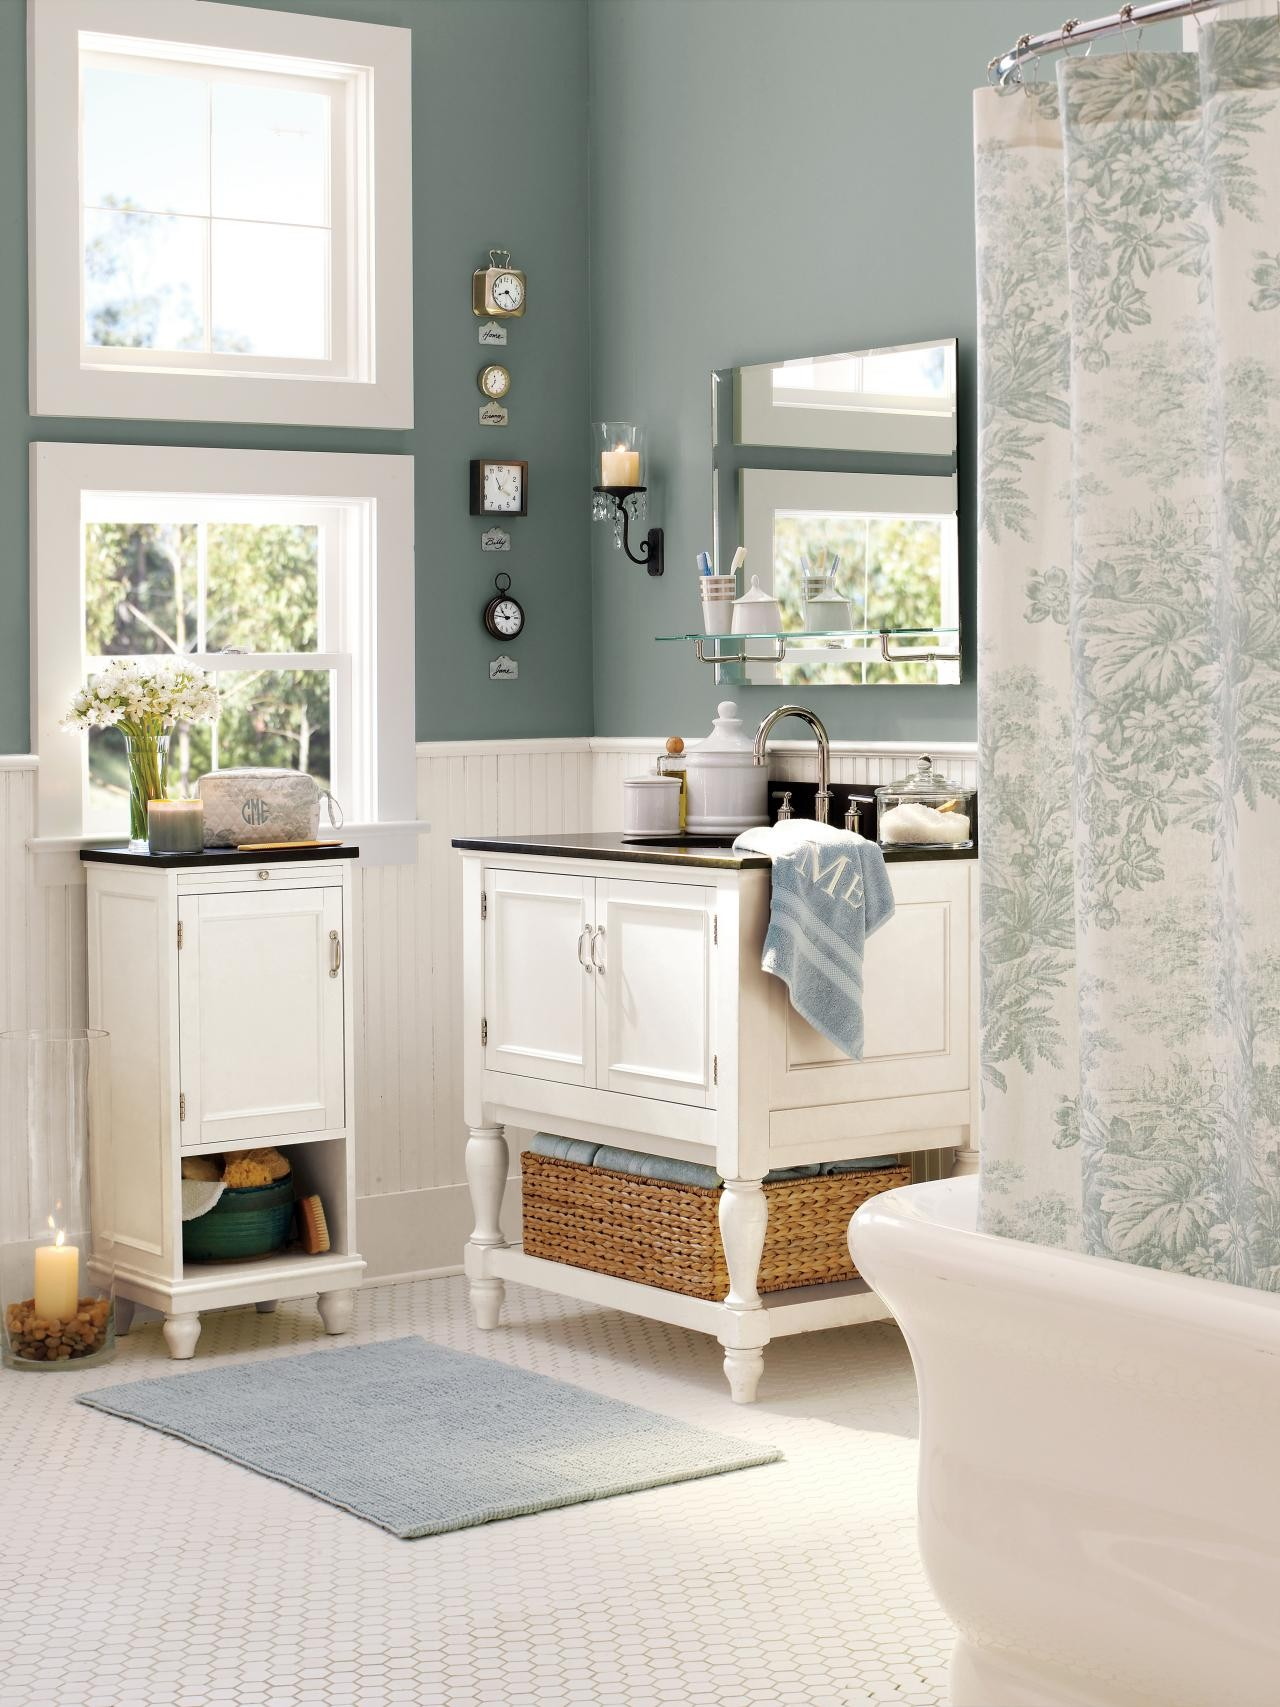 Pottery Barn Bathroom Stunning This Bathroom is Full Of Accessories From the Retailer Pottery Inspiration